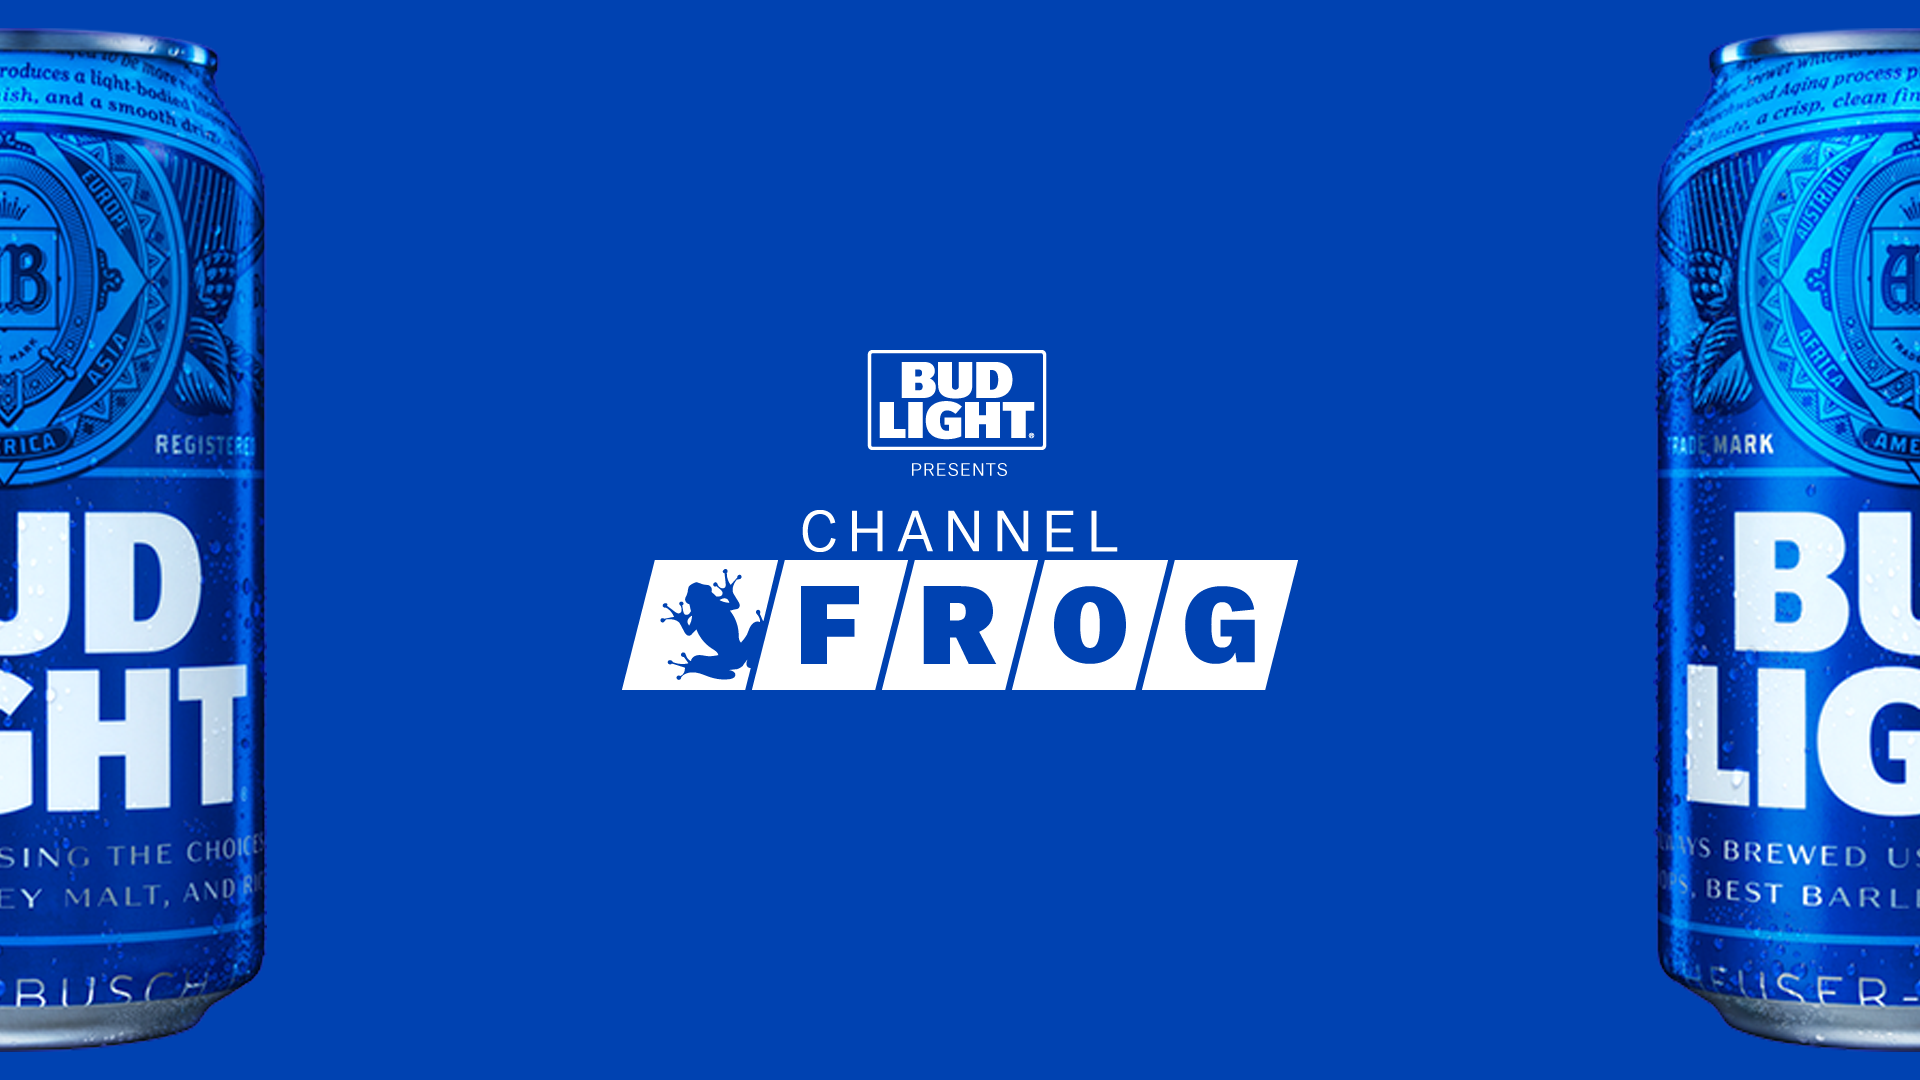 Channelfrog titlecard cans